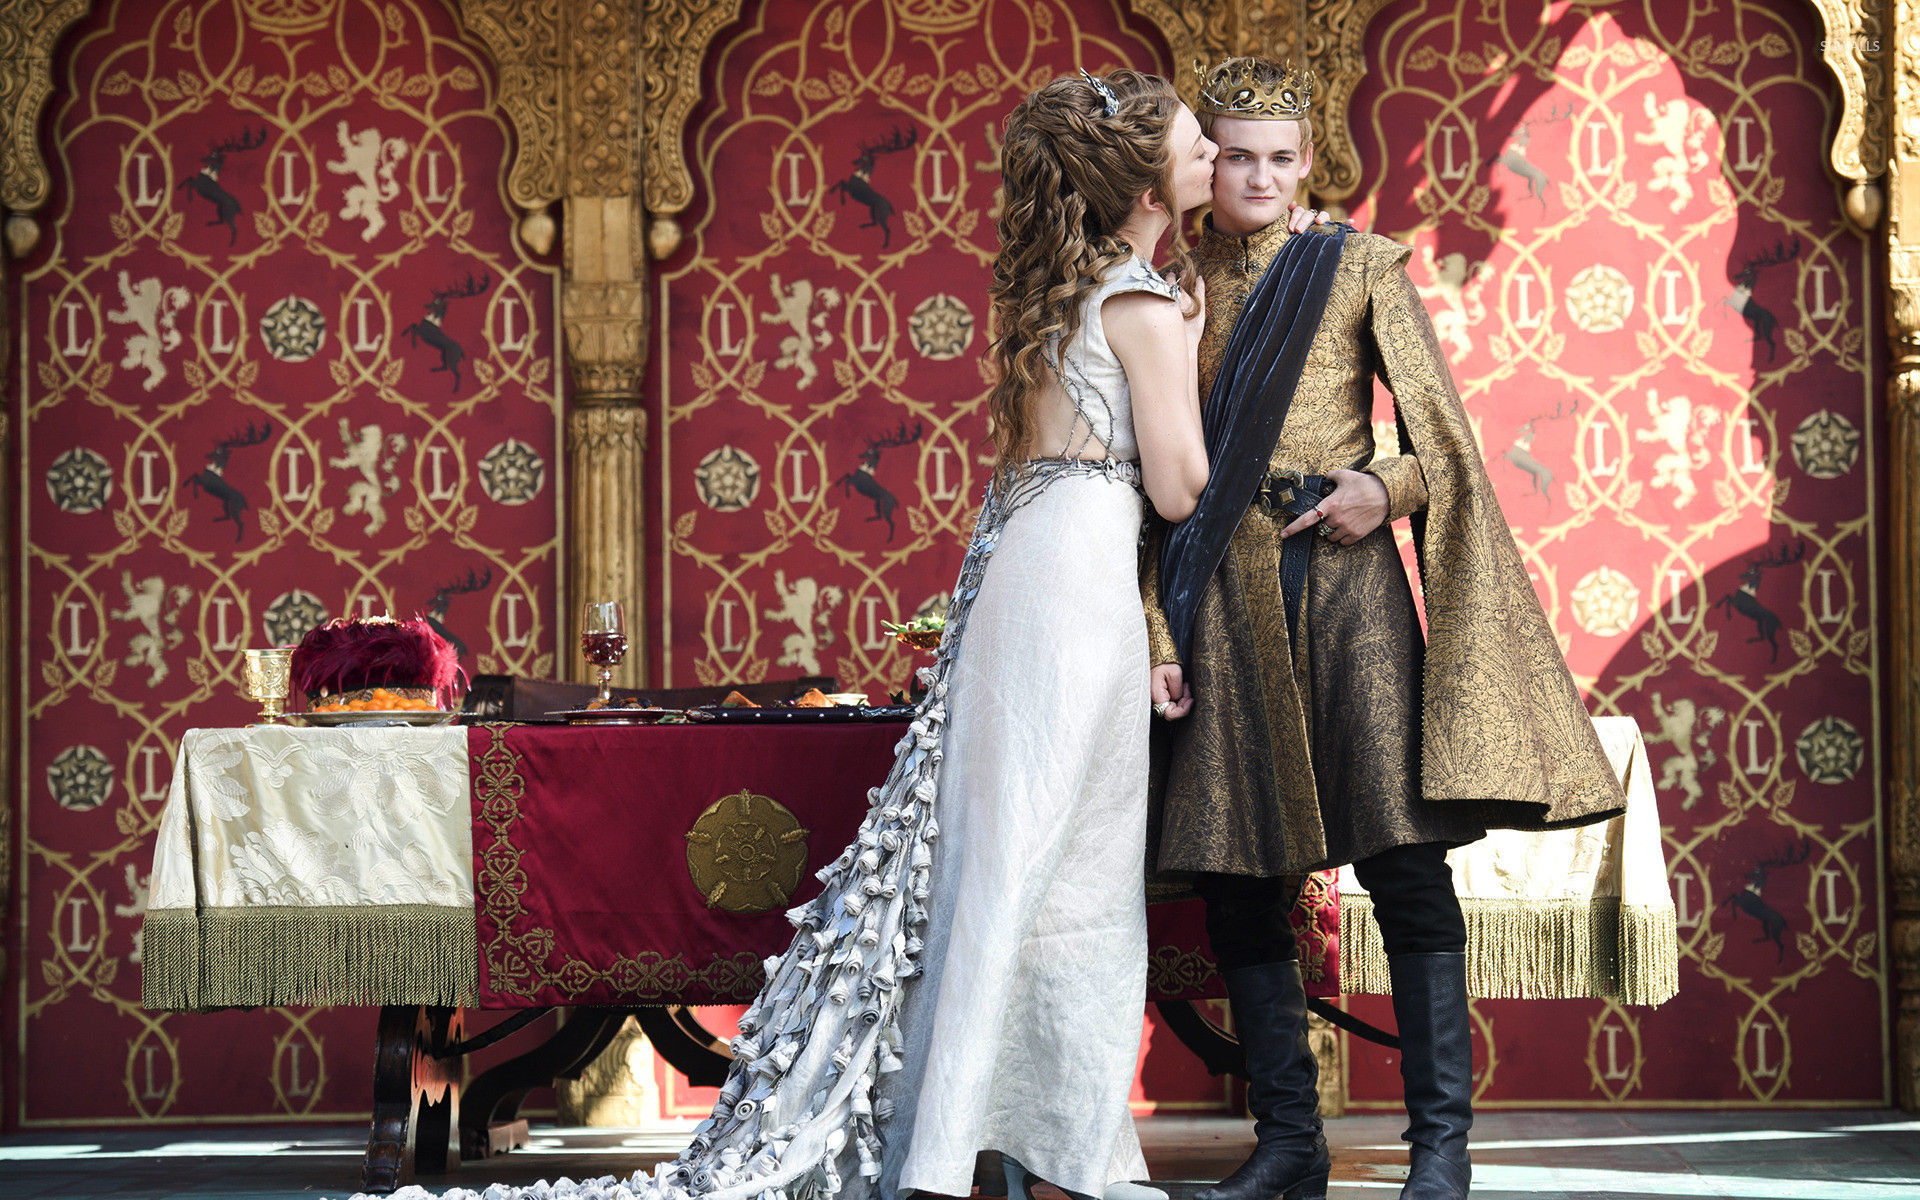 1920x1200 Joffrey and Margaery - Game of Thrones wallpaper  jpg